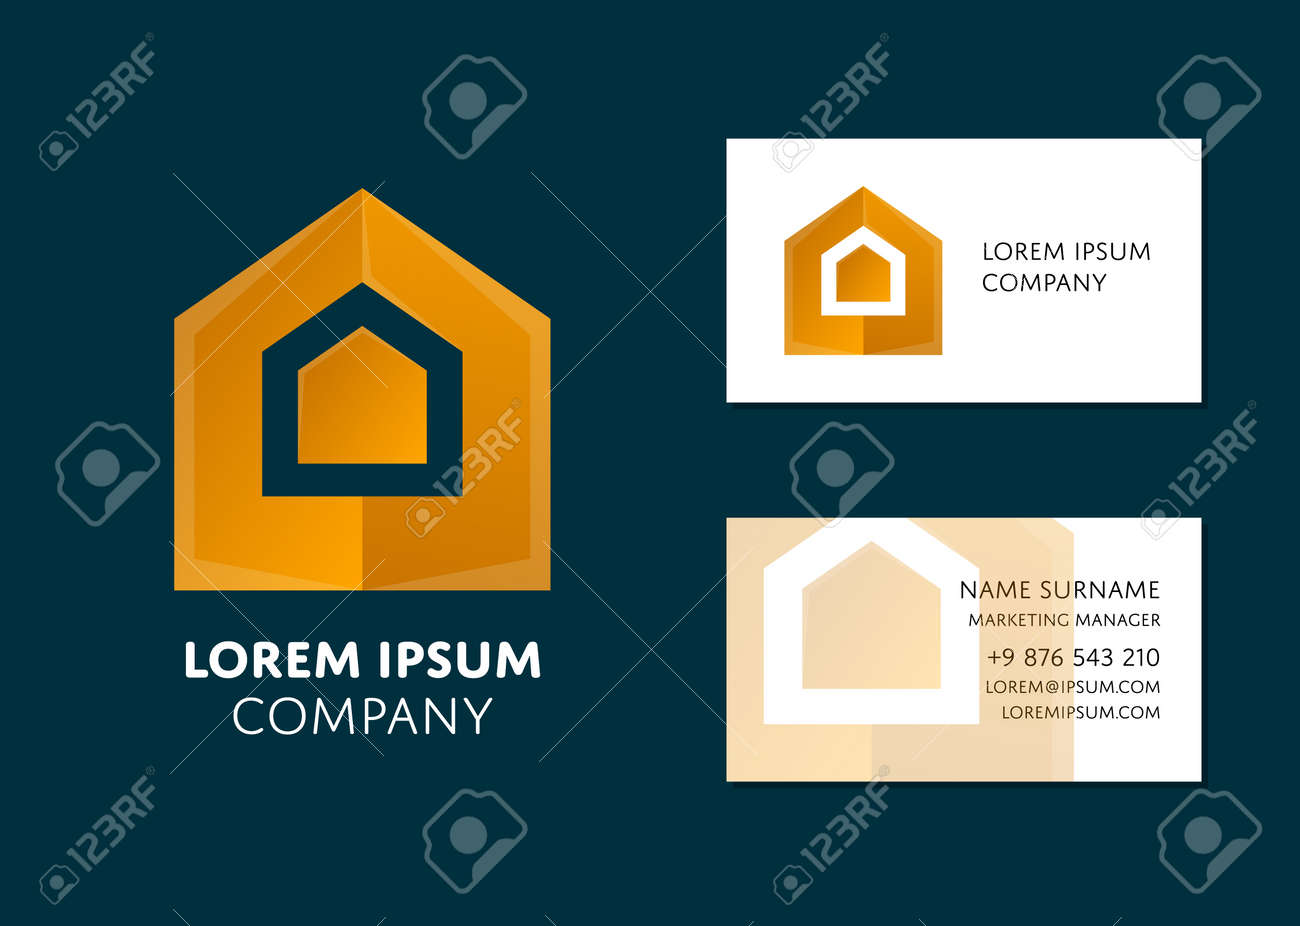 Creative business card template with yellow geometric logo name creative business card template with yellow geometric logo name work position phone cheaphphosting Choice Image